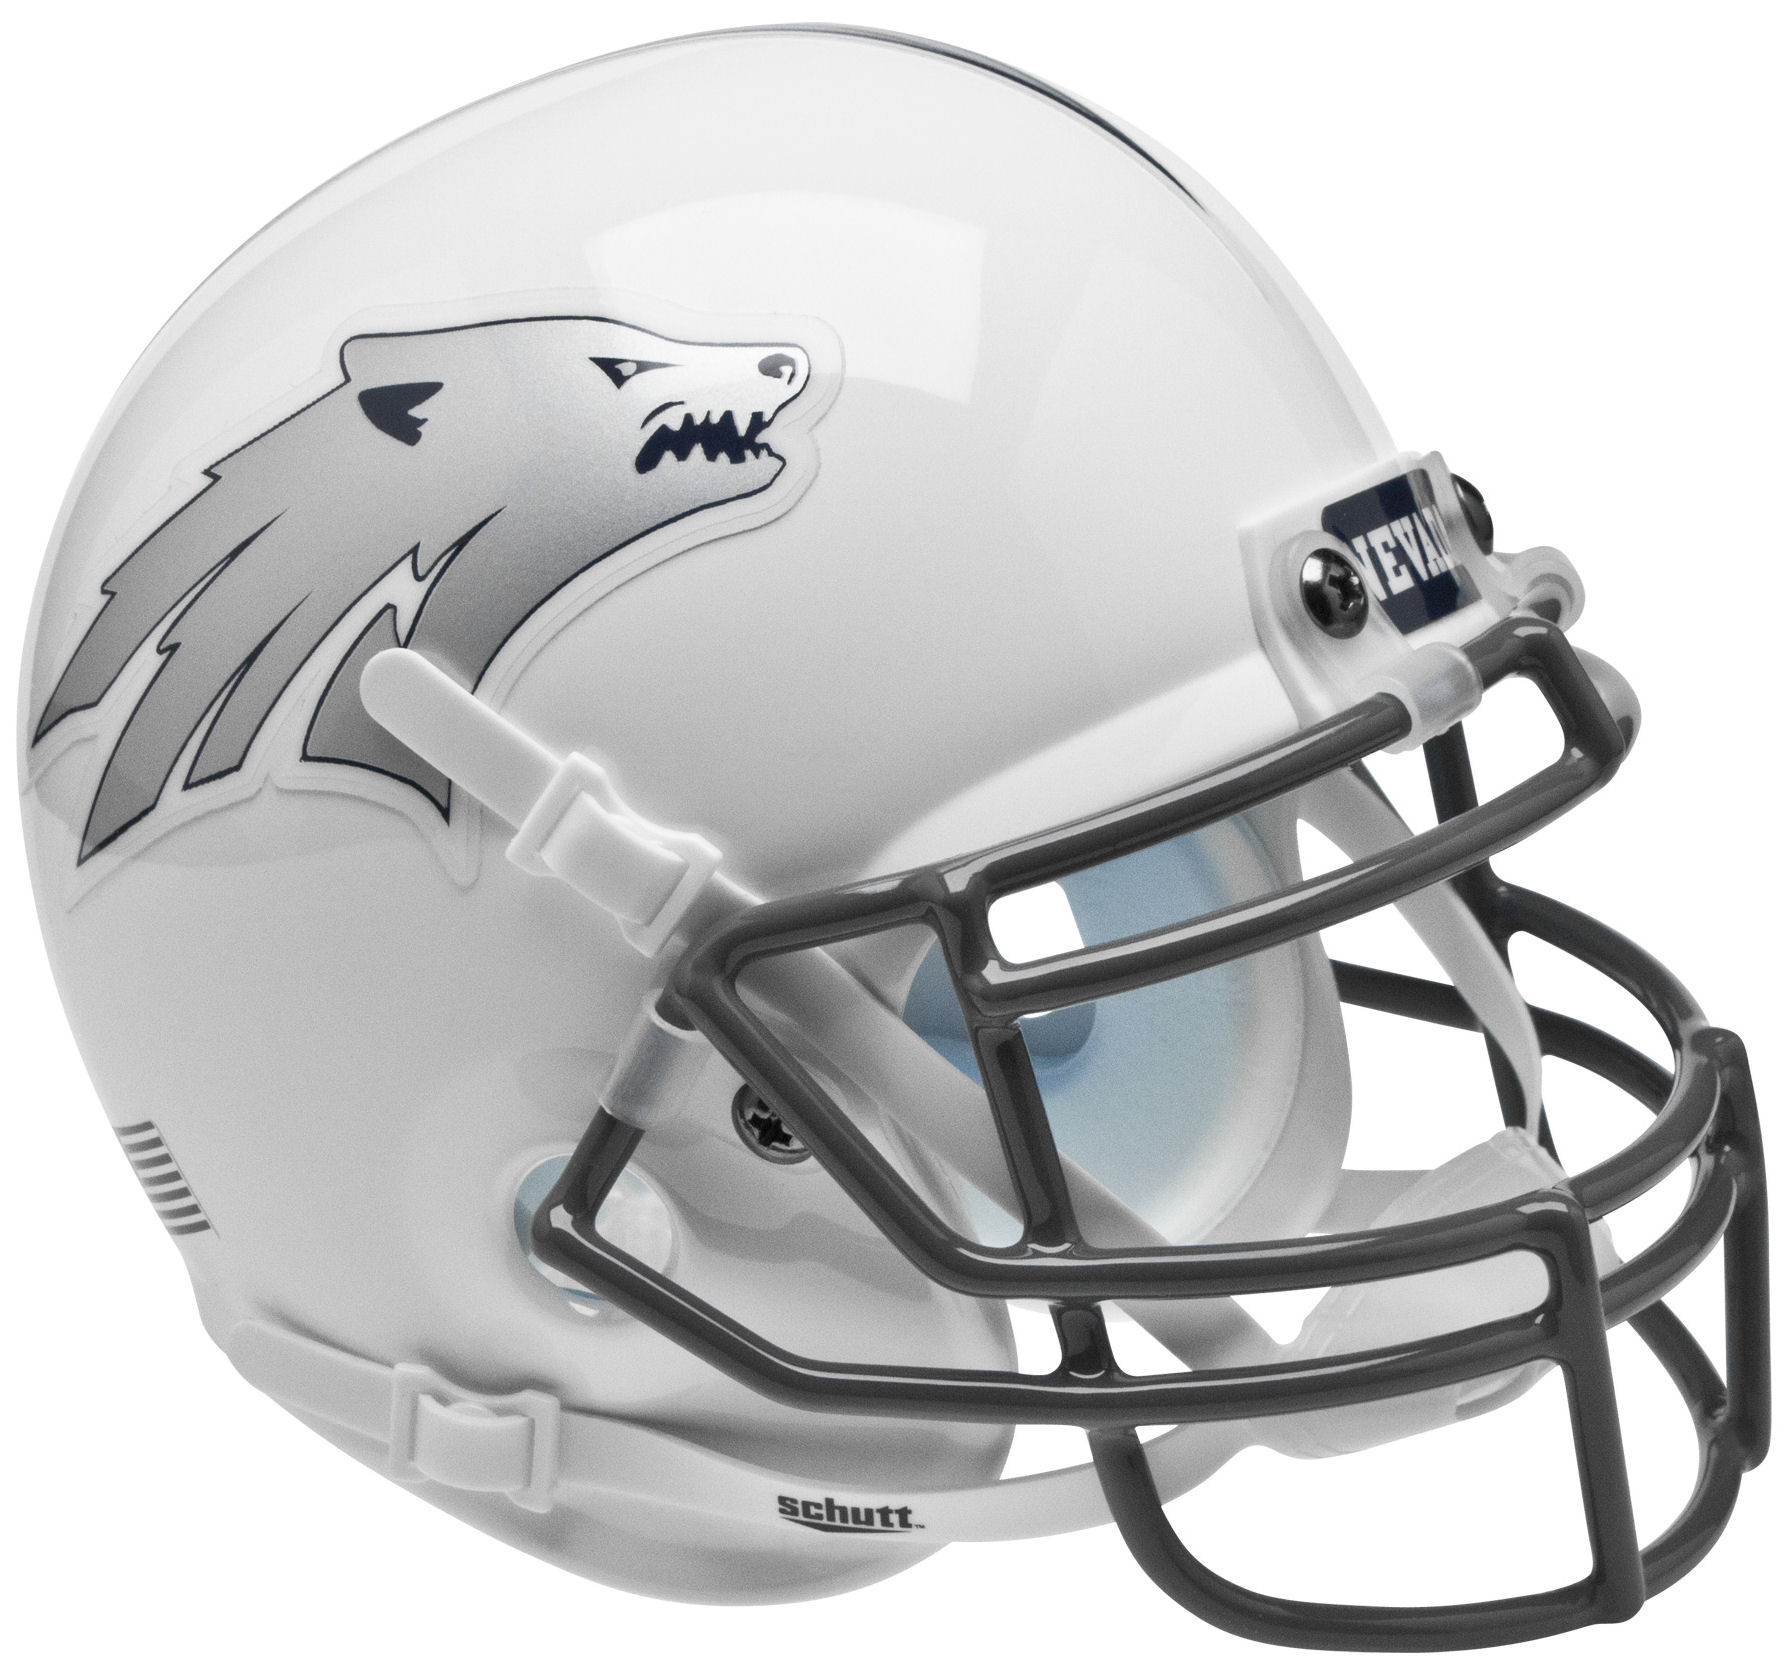 Baylor Bears White Officially Licensed Full Size XP Replica Football Helmet